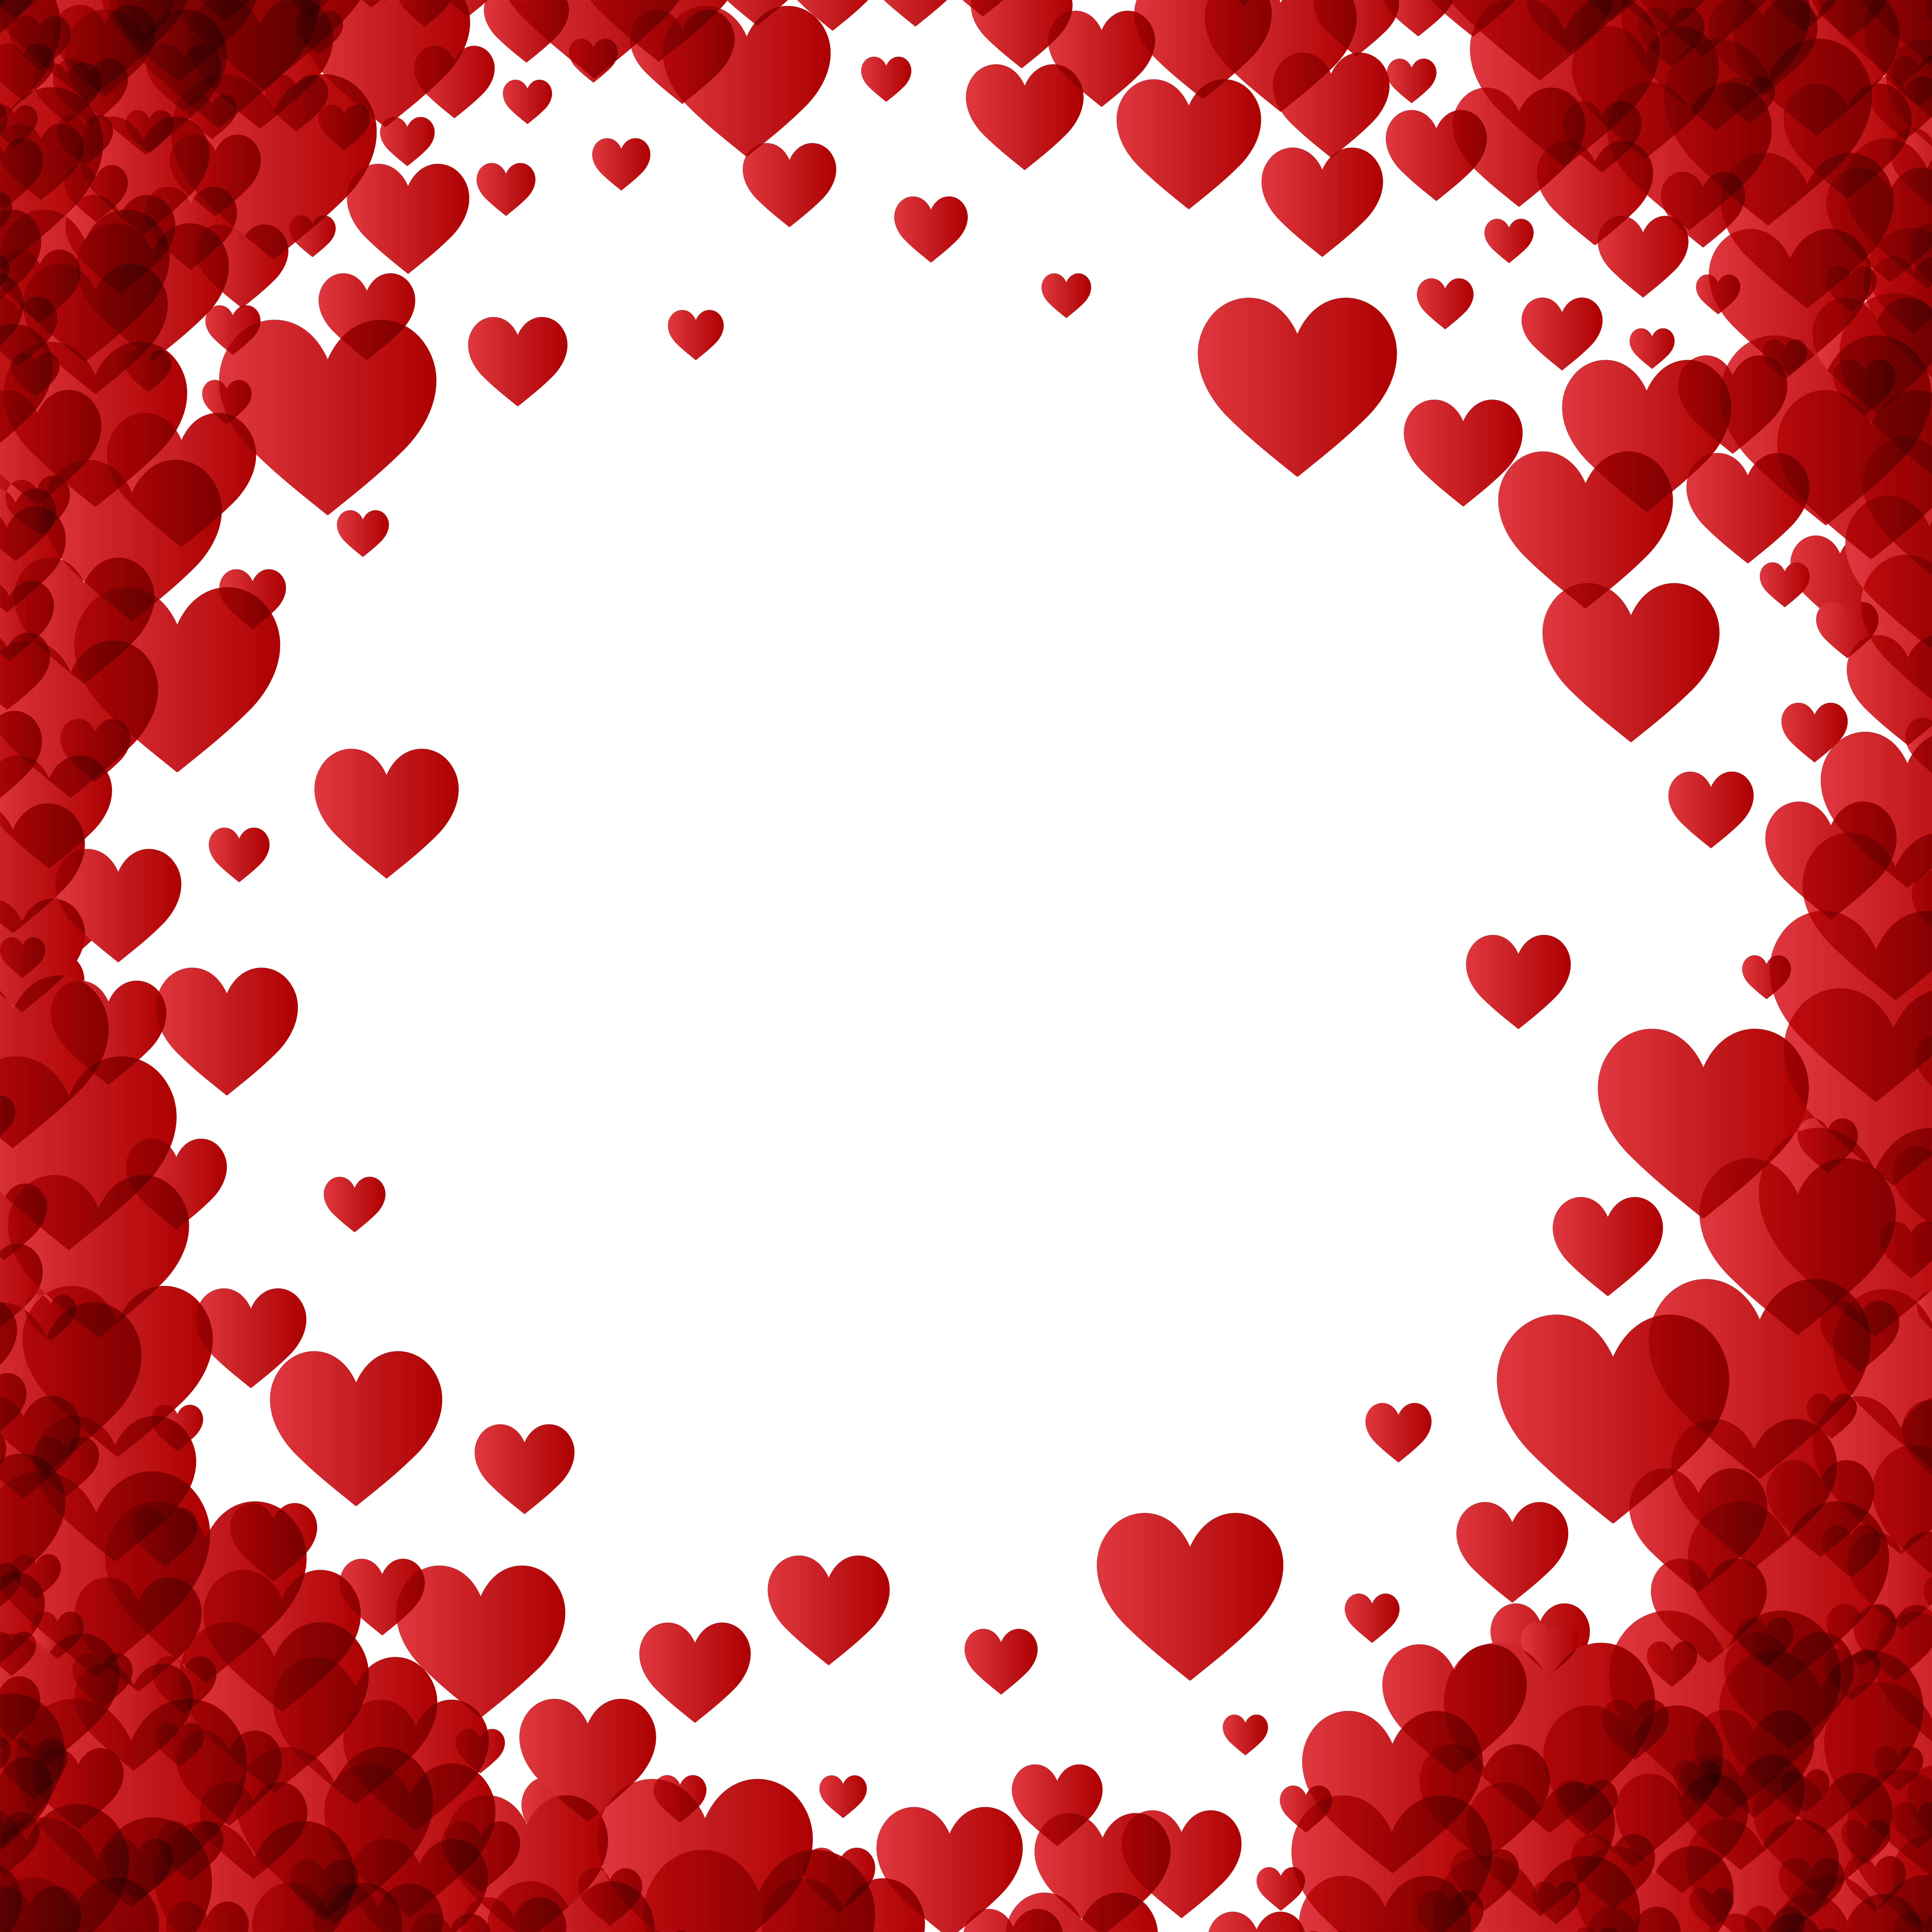 Valentines day photo frame clipart png transparent library Valentine\'s Day Heart Border Frame Transparent Image ... png transparent library